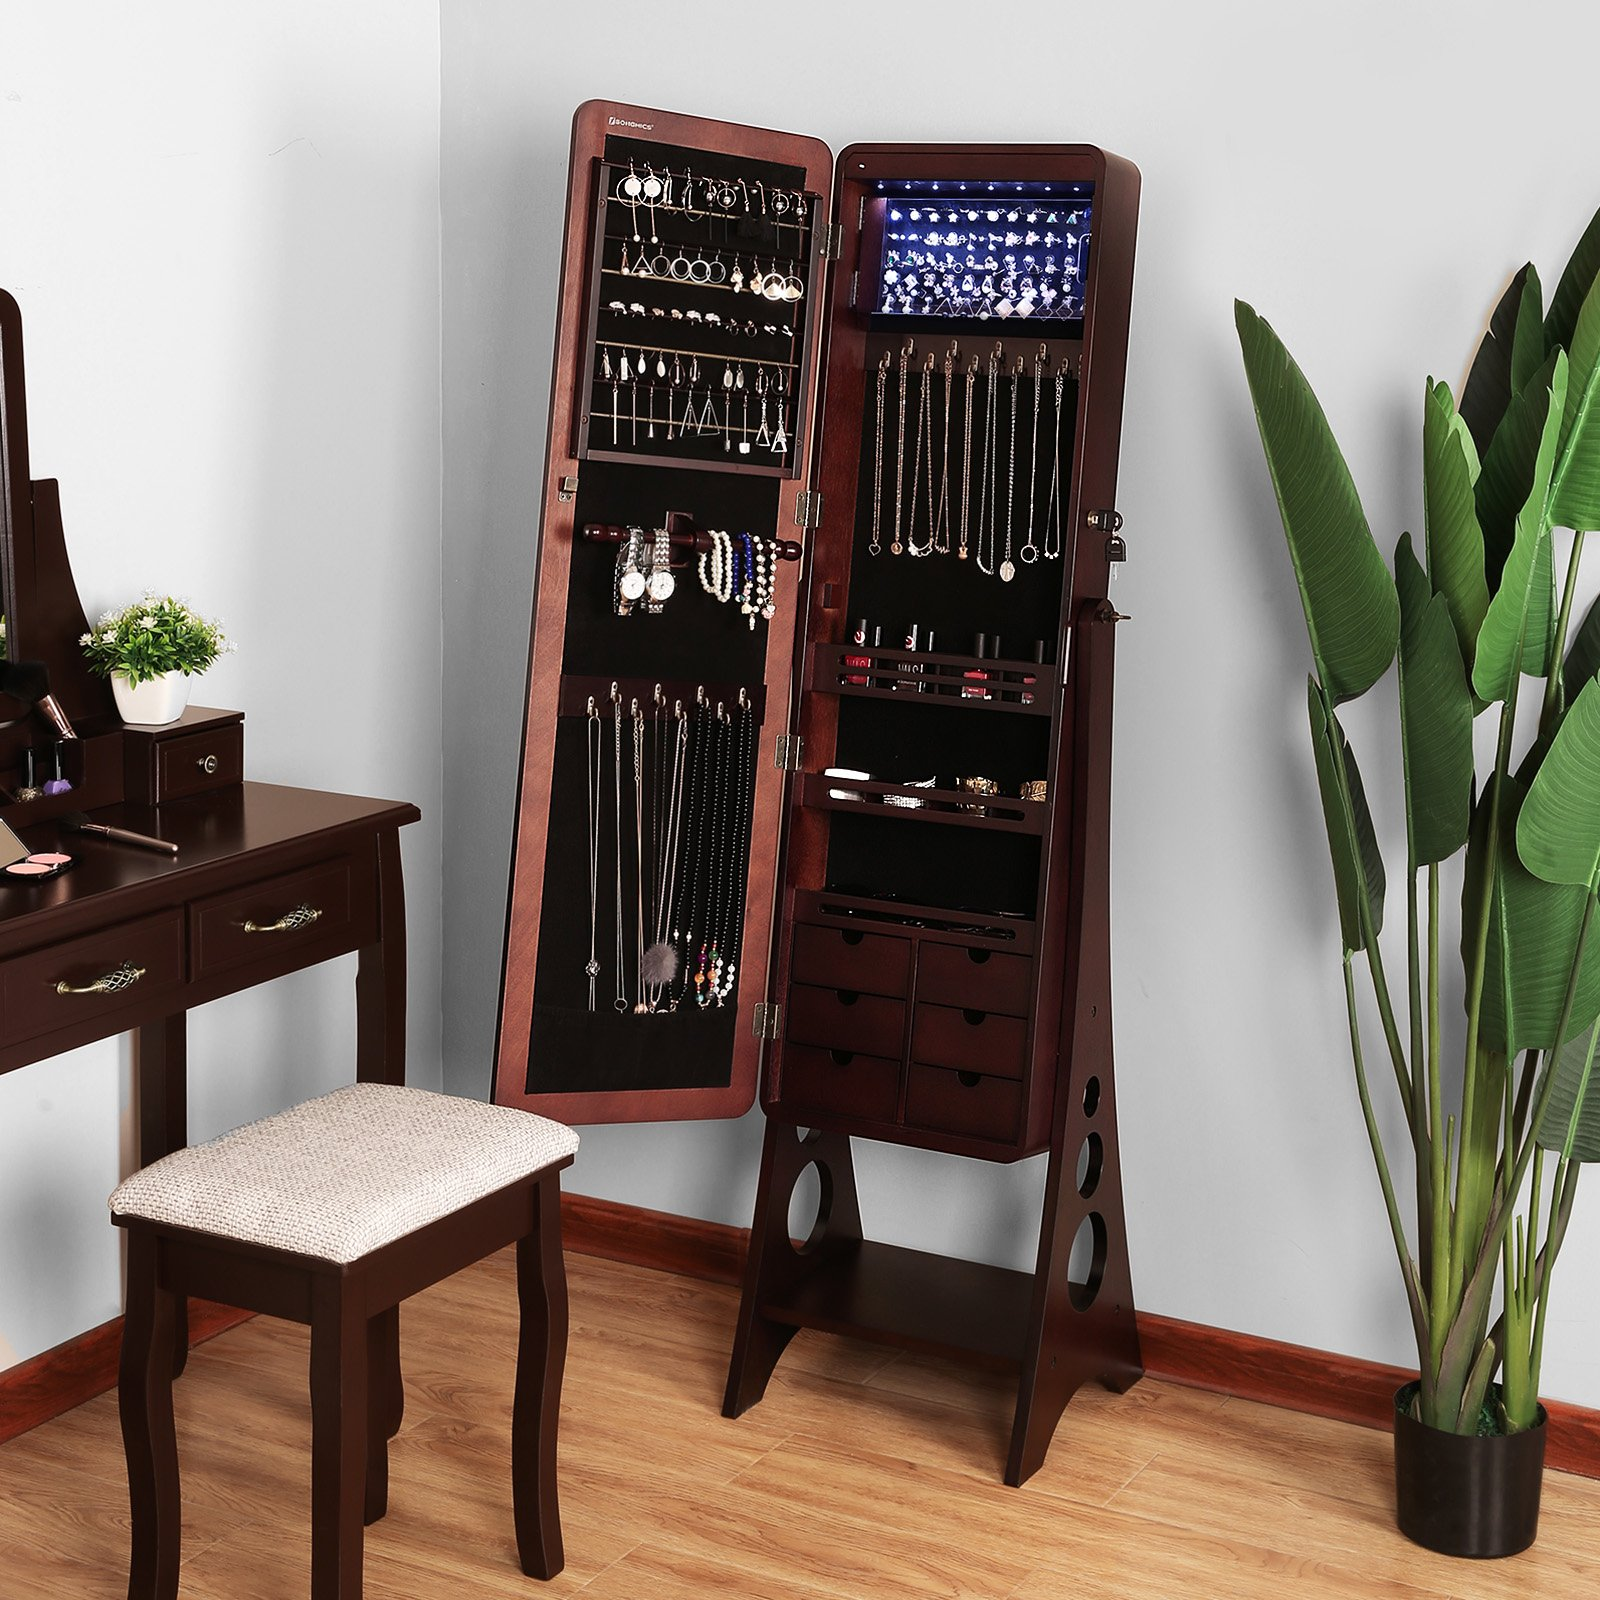 SONGMICS 8 LEDs Jewelry Cabinet Armoire with Beveled Edge Mirror, Gorgeous Jewelry Organizer Large Capacity Brown Patented UJJC89K by SONGMICS (Image #3)